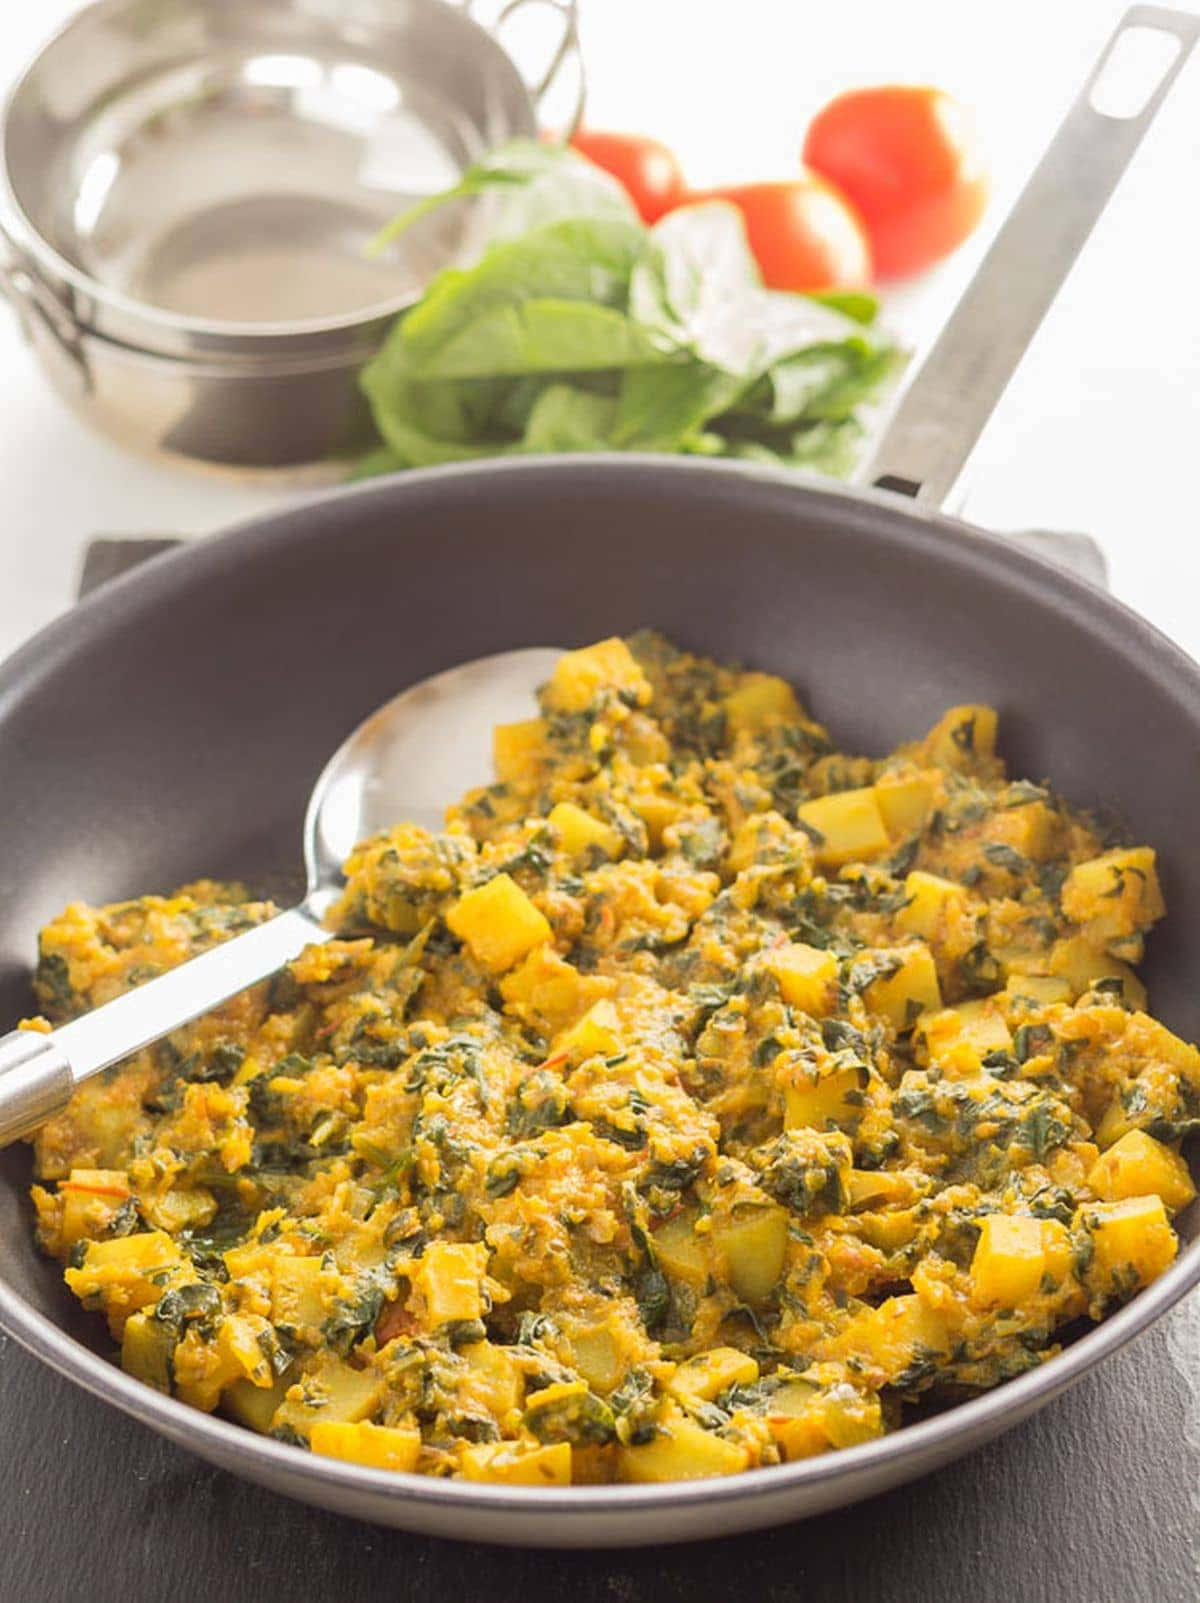 A pan of potato and spinach curry with a serving spoon in. Balti dishes and spinach leaves as decorations in the background.